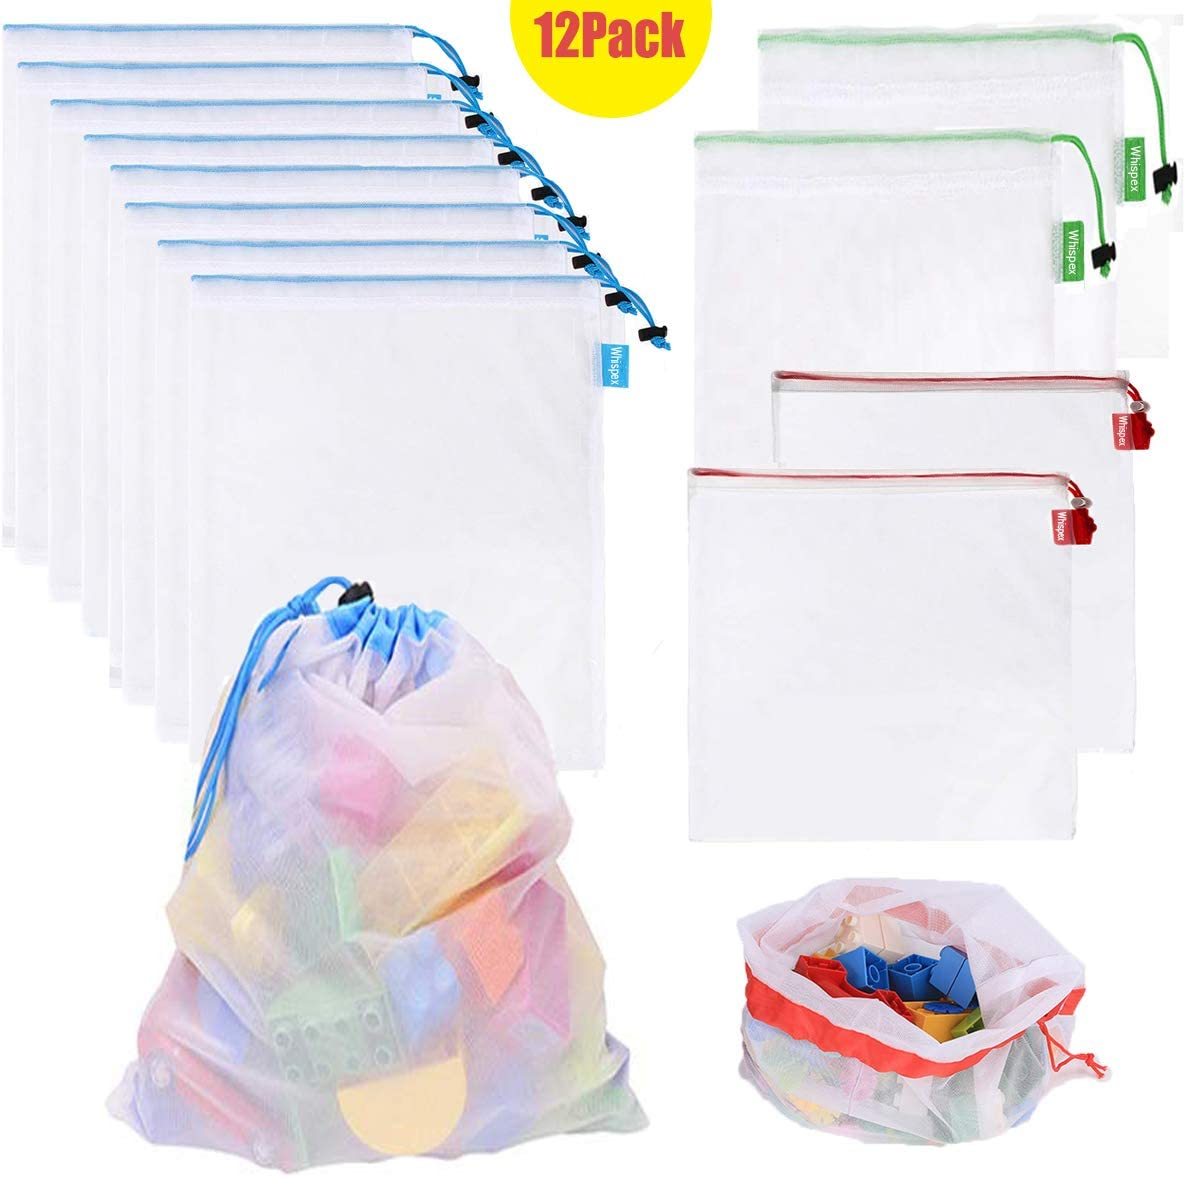 Amazon.com: Whispex Toy Storage & Organization Mesh Bags Set of 12 ...